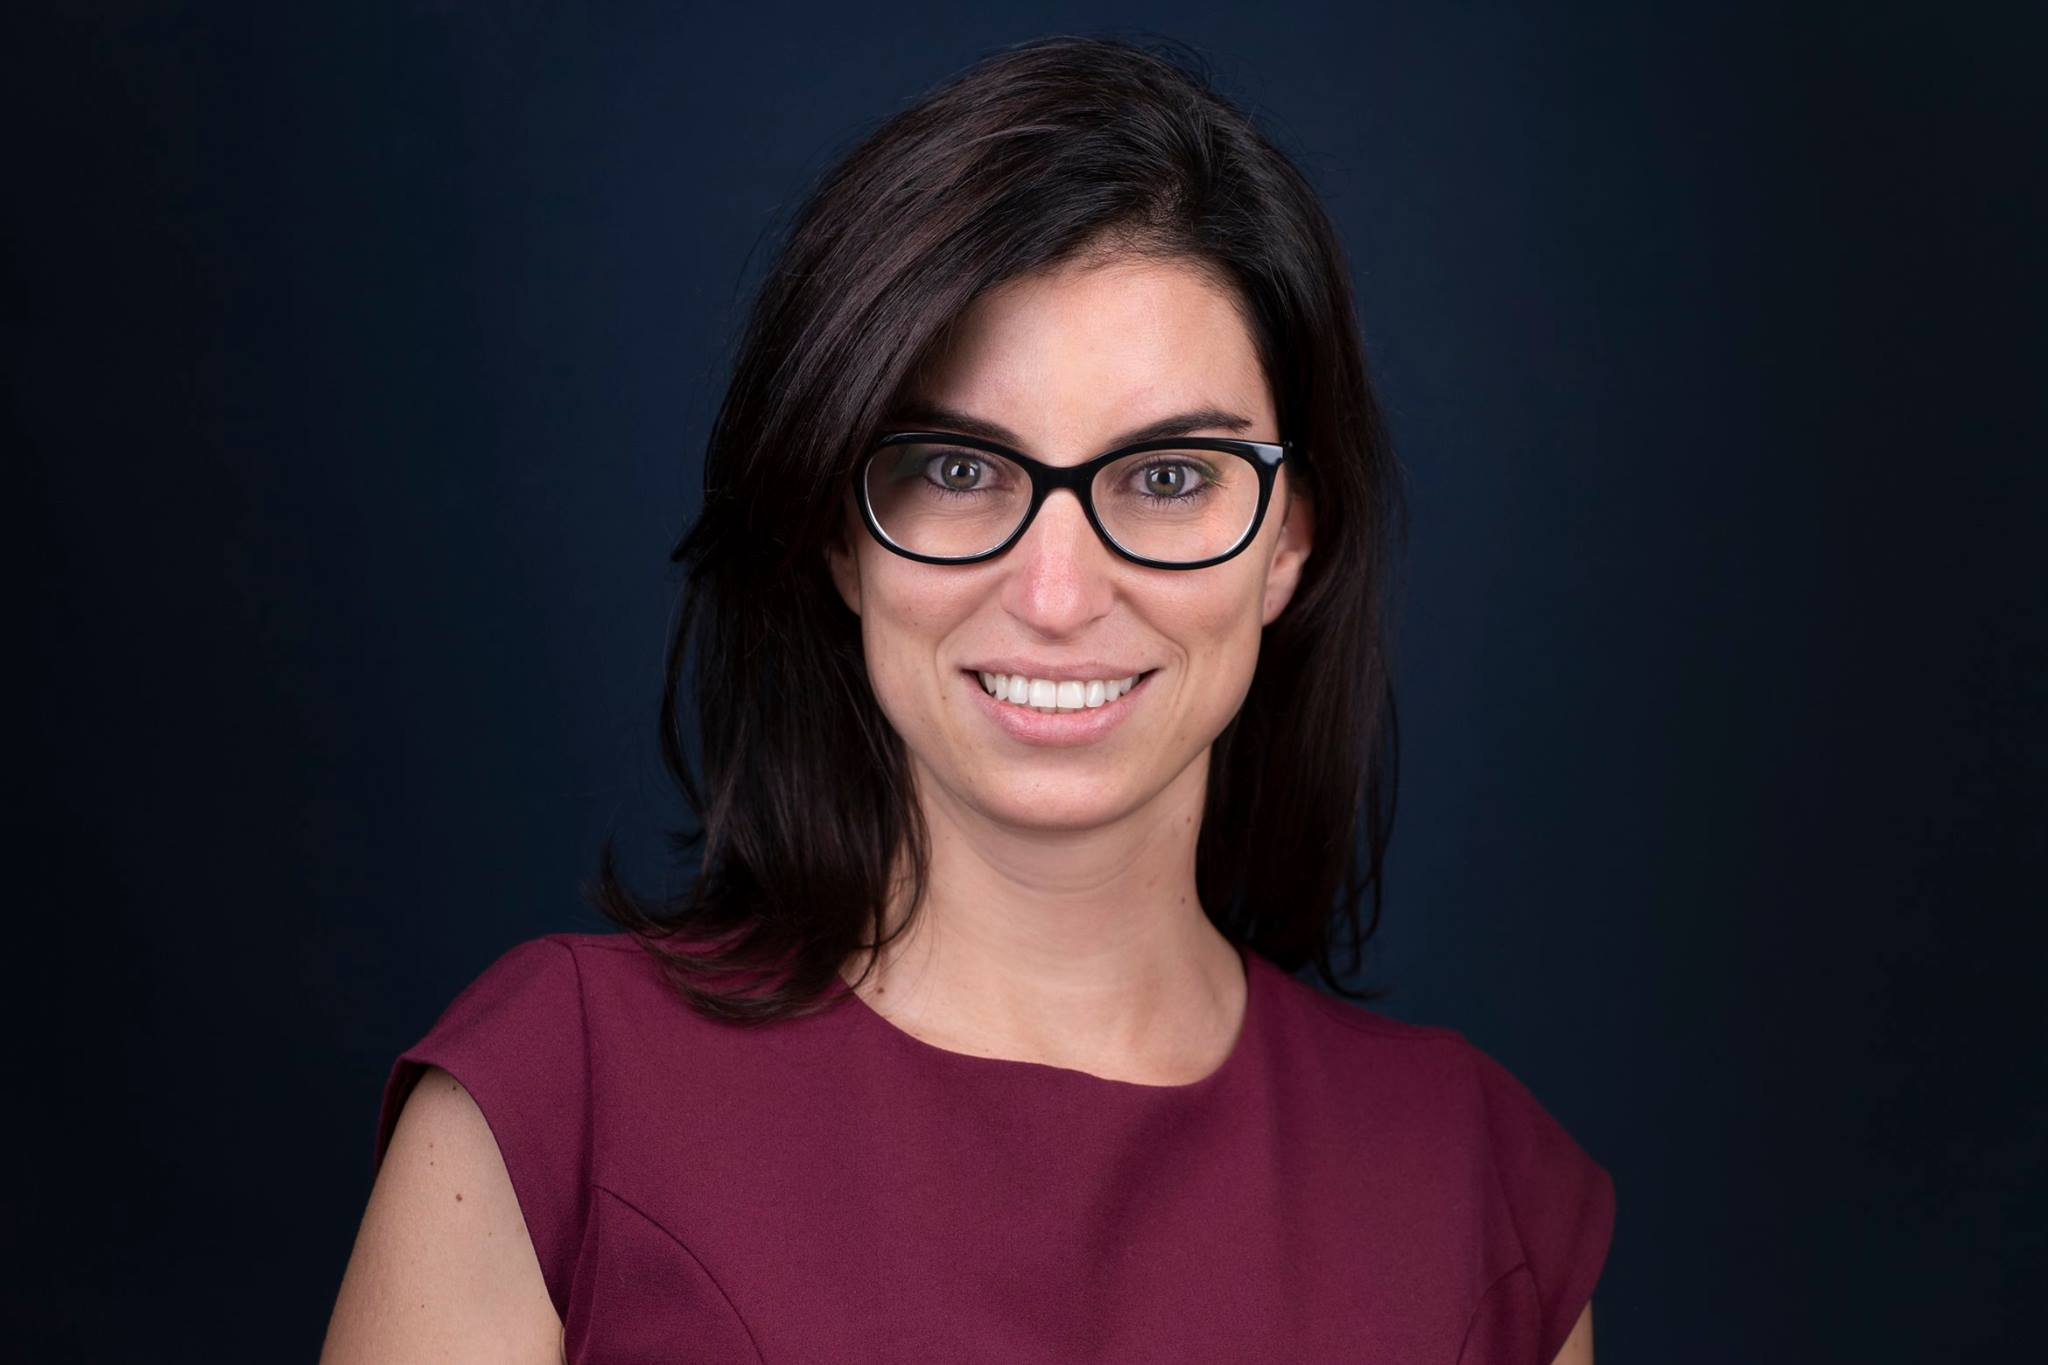 woman with glasses headshot